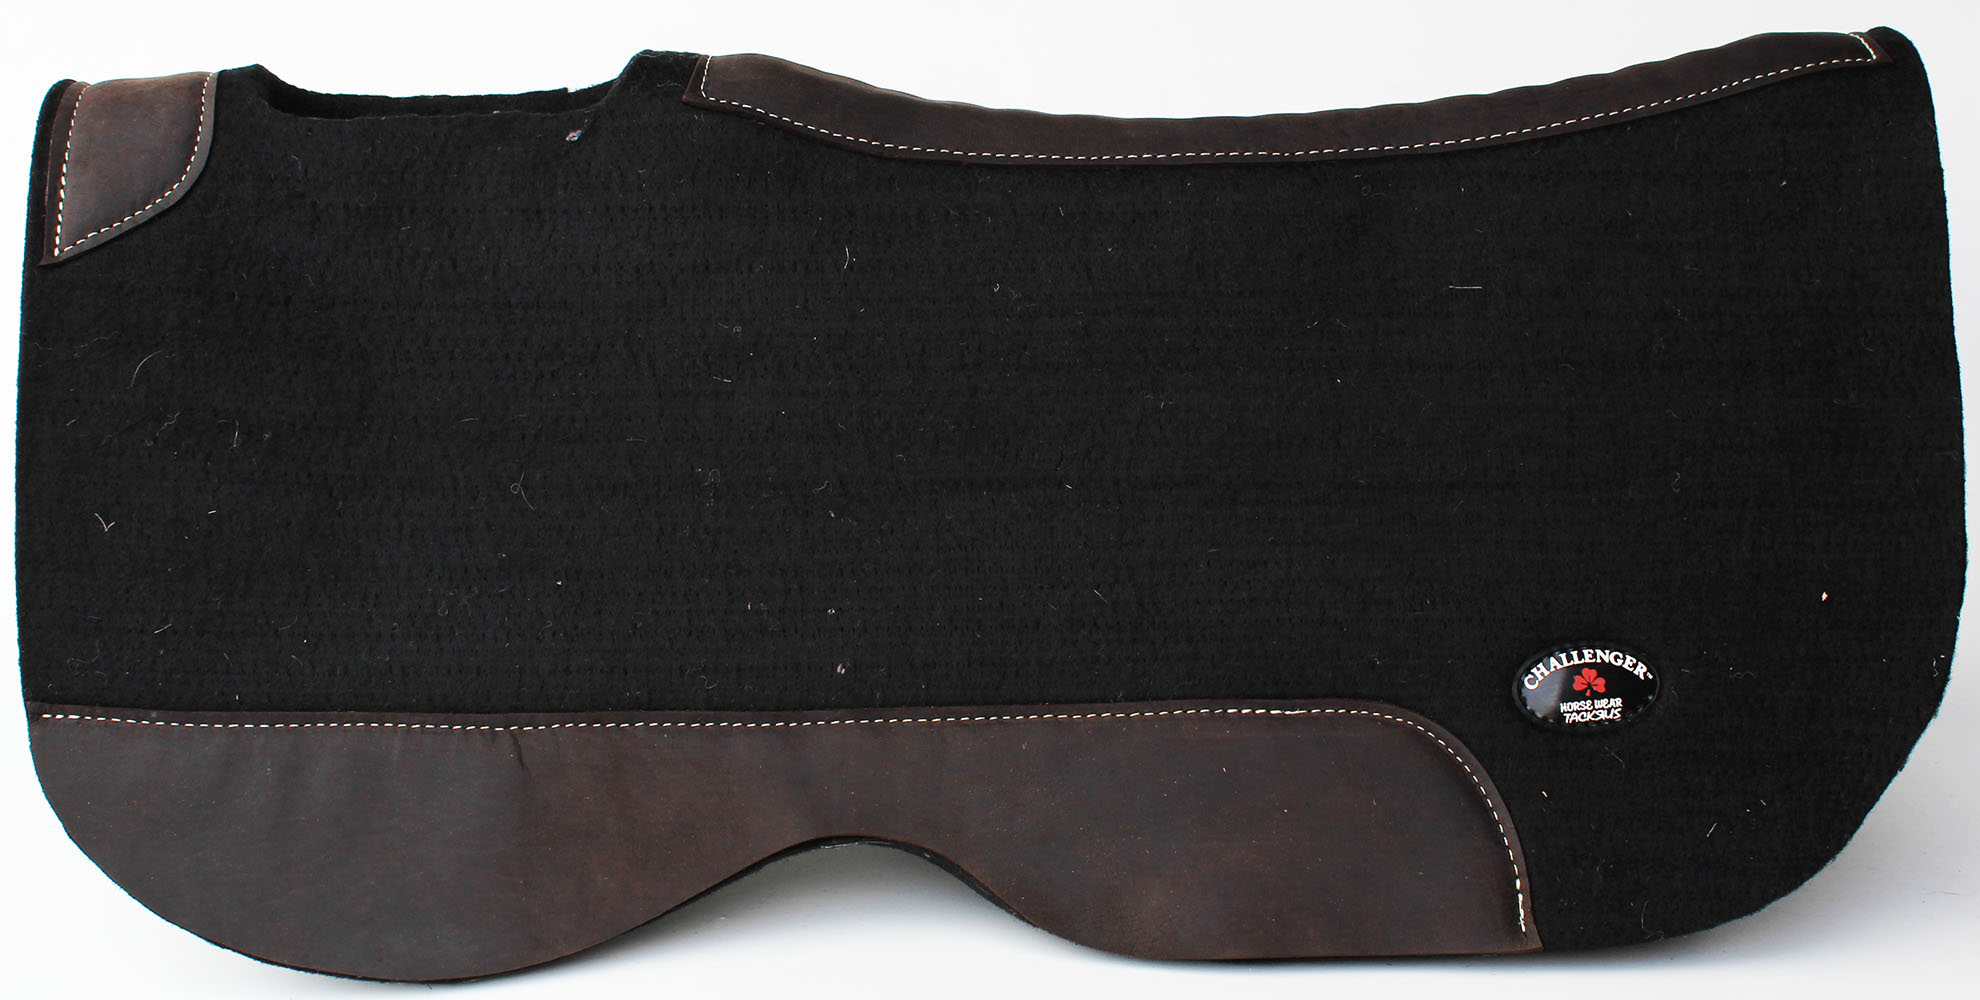 Horse SADDLE PAD  Contour 3 4 Wool Felt Western Butterfly Close Contact 39122BK2